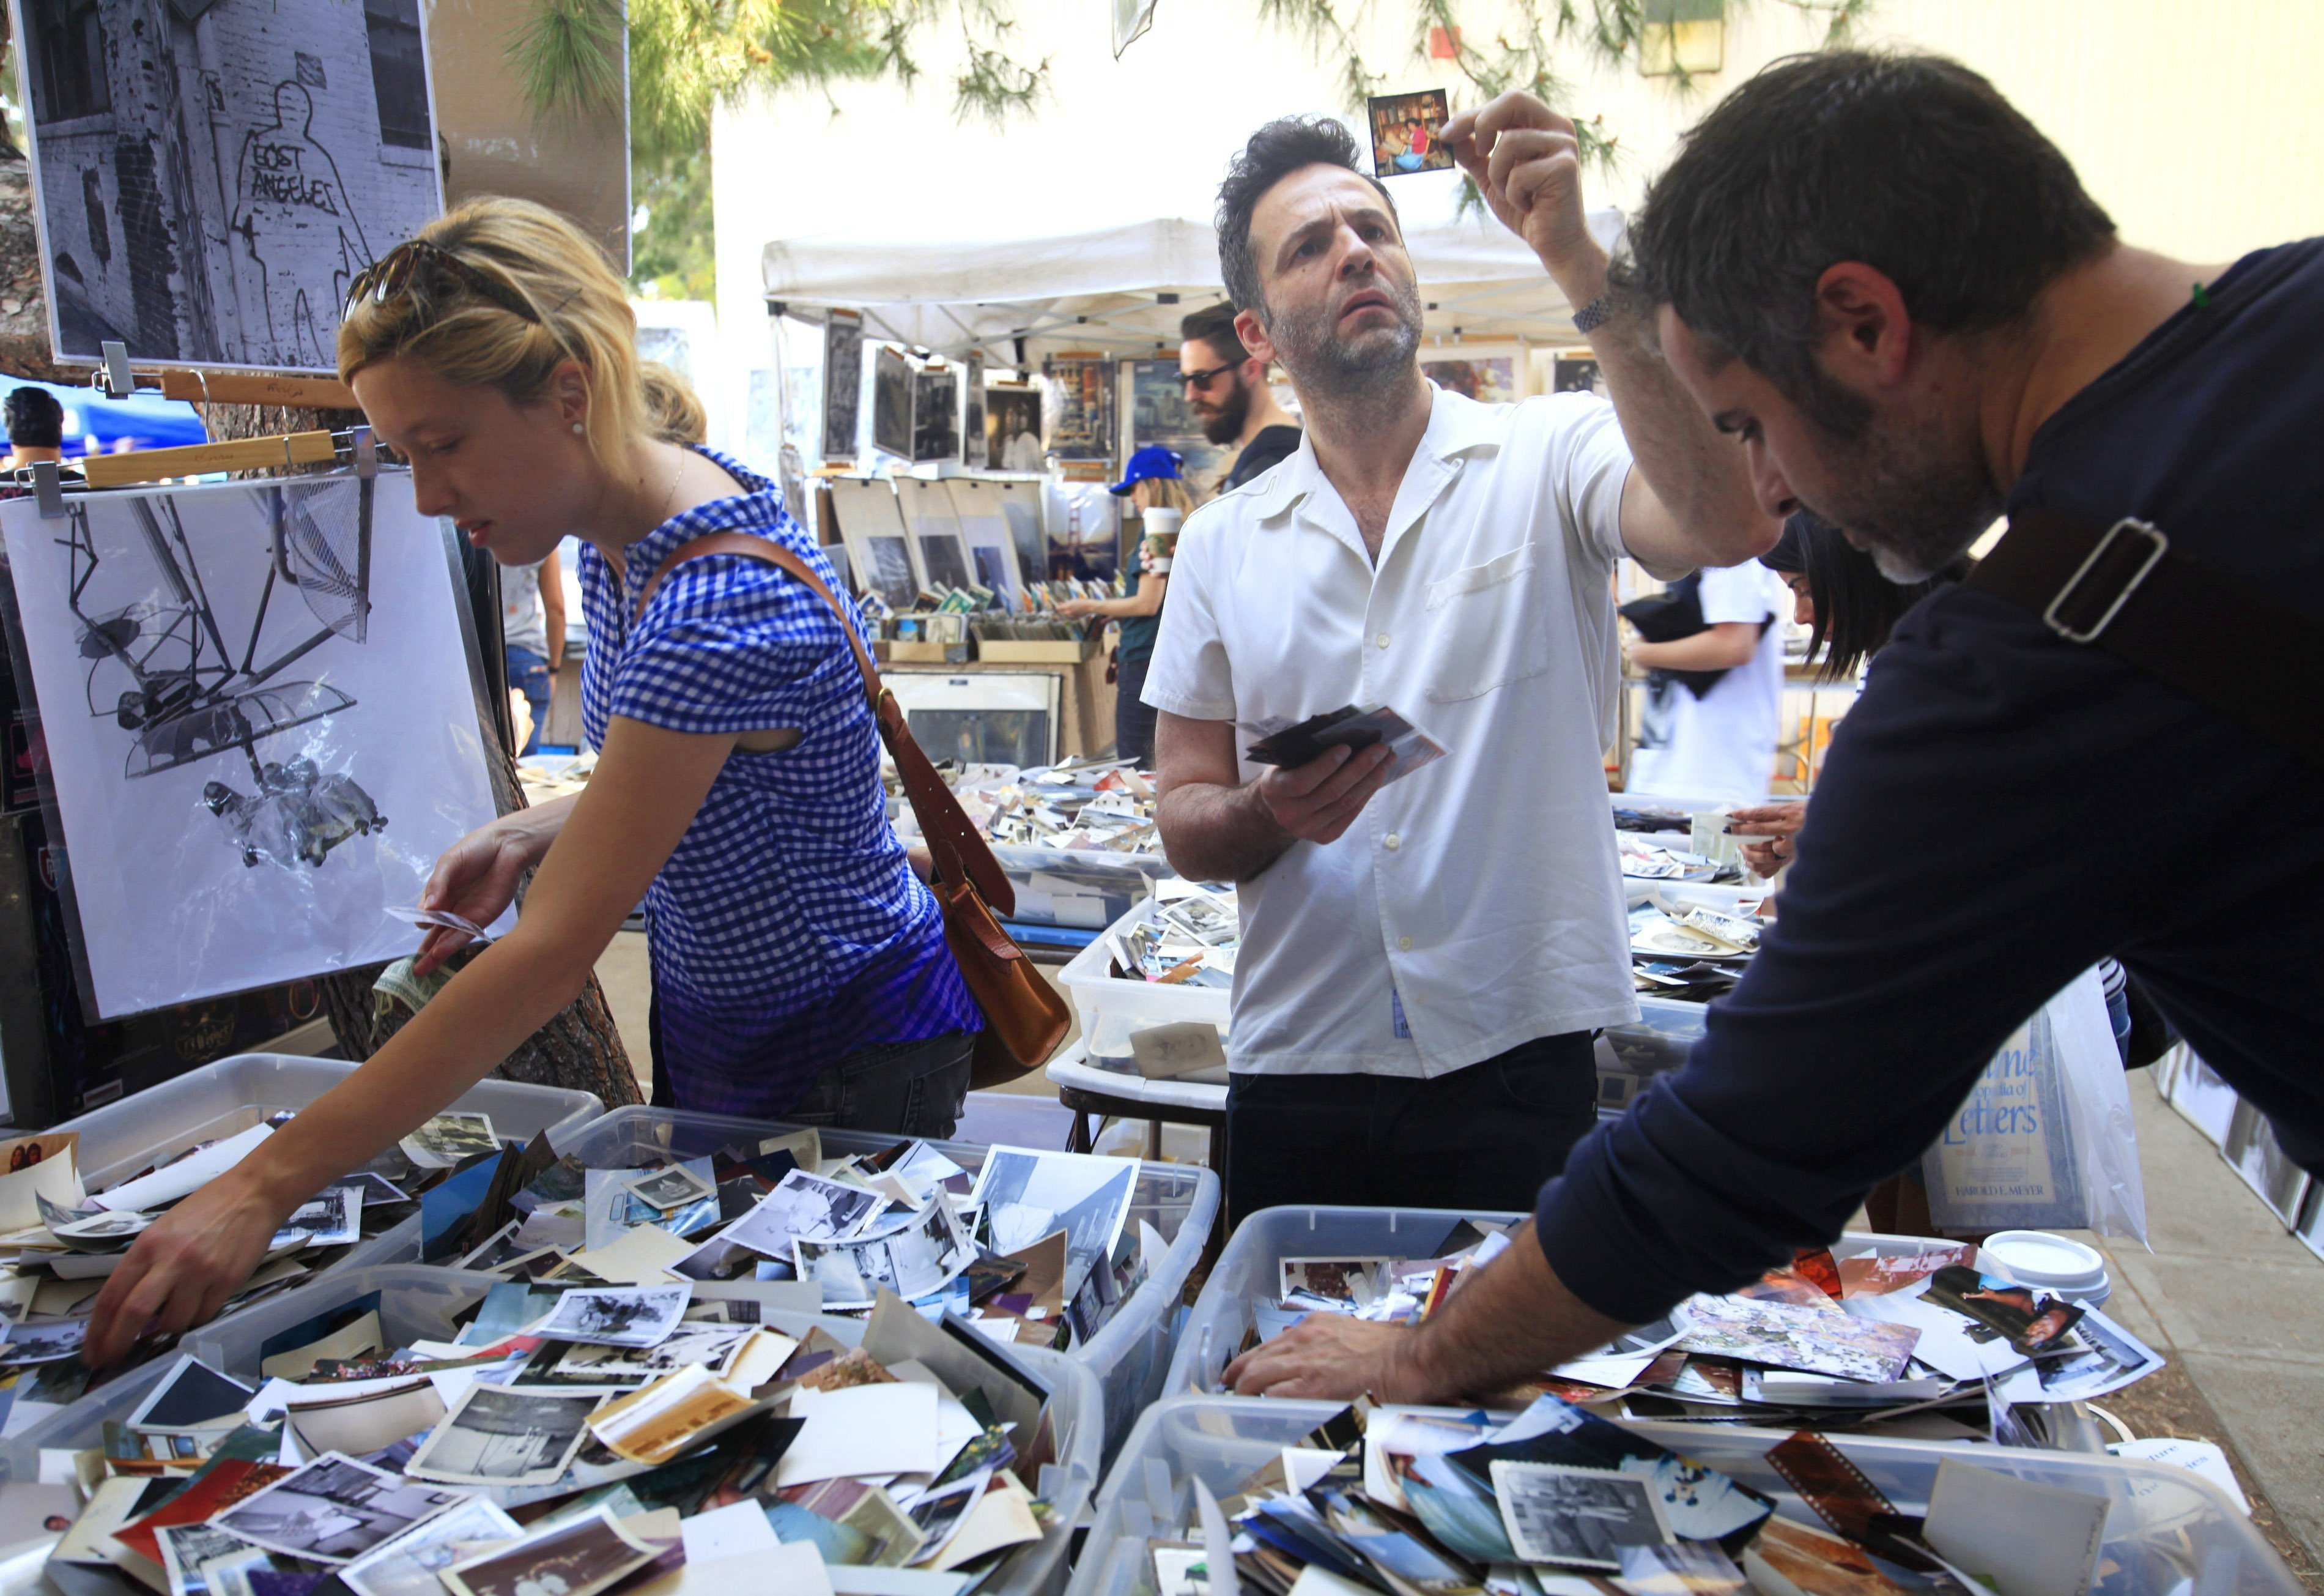 Shoppers are drawn to the bins of old photos for sale at the Melrose Trading Post outside Fairfax High School in Los Angeles.